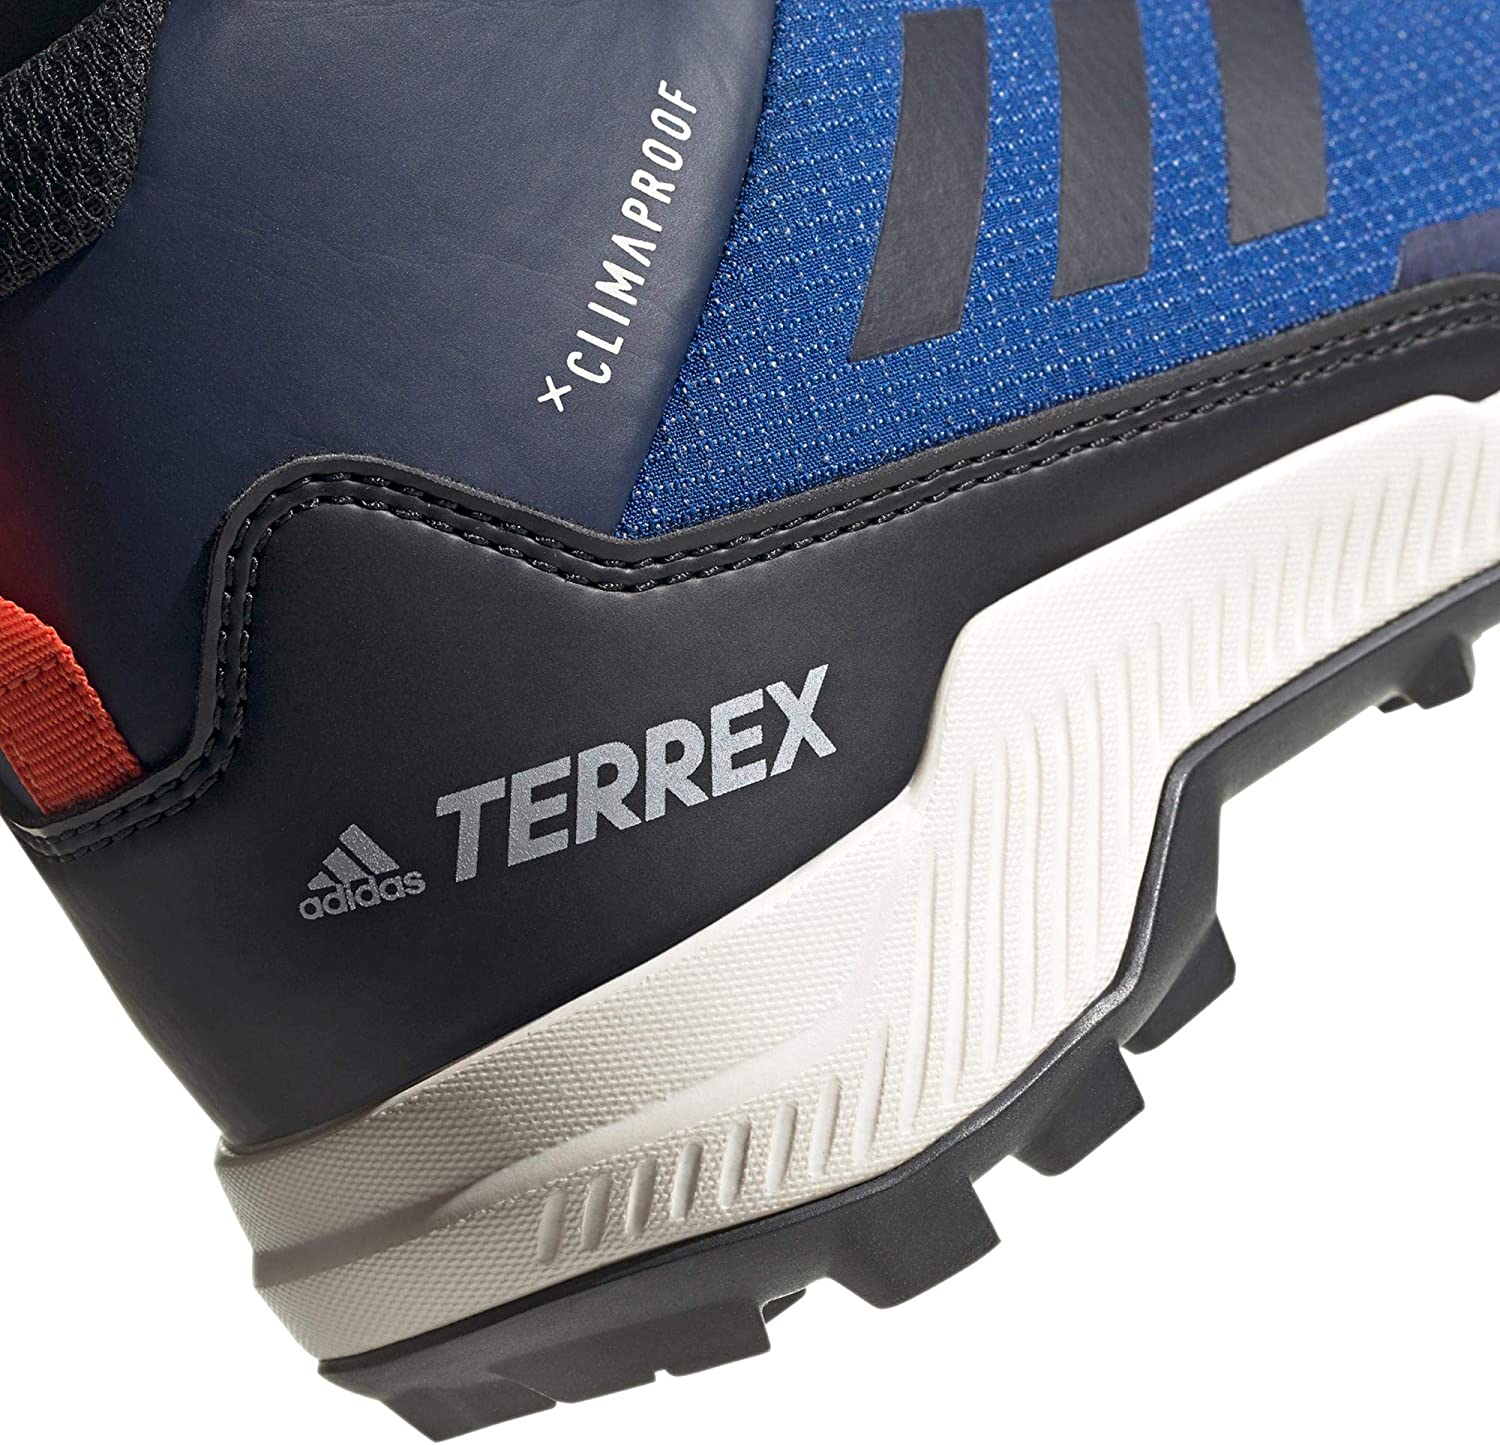 adidas Chaussures Kid Terrex Winter Mid Boa: